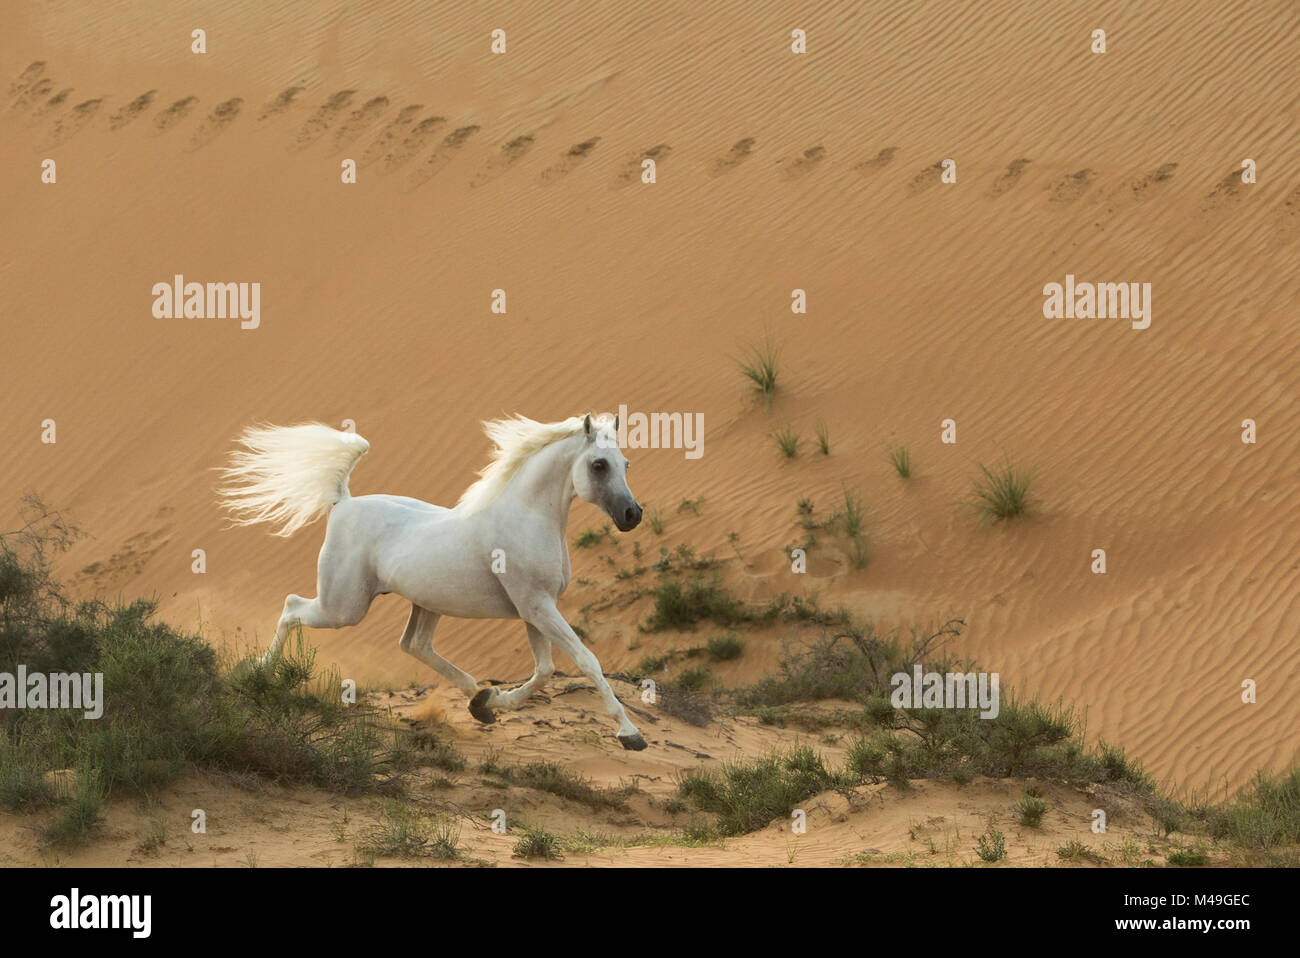 Grey Arabian stallion running in desert dunes near Dubai, United Arab Emirates. - Stock Image